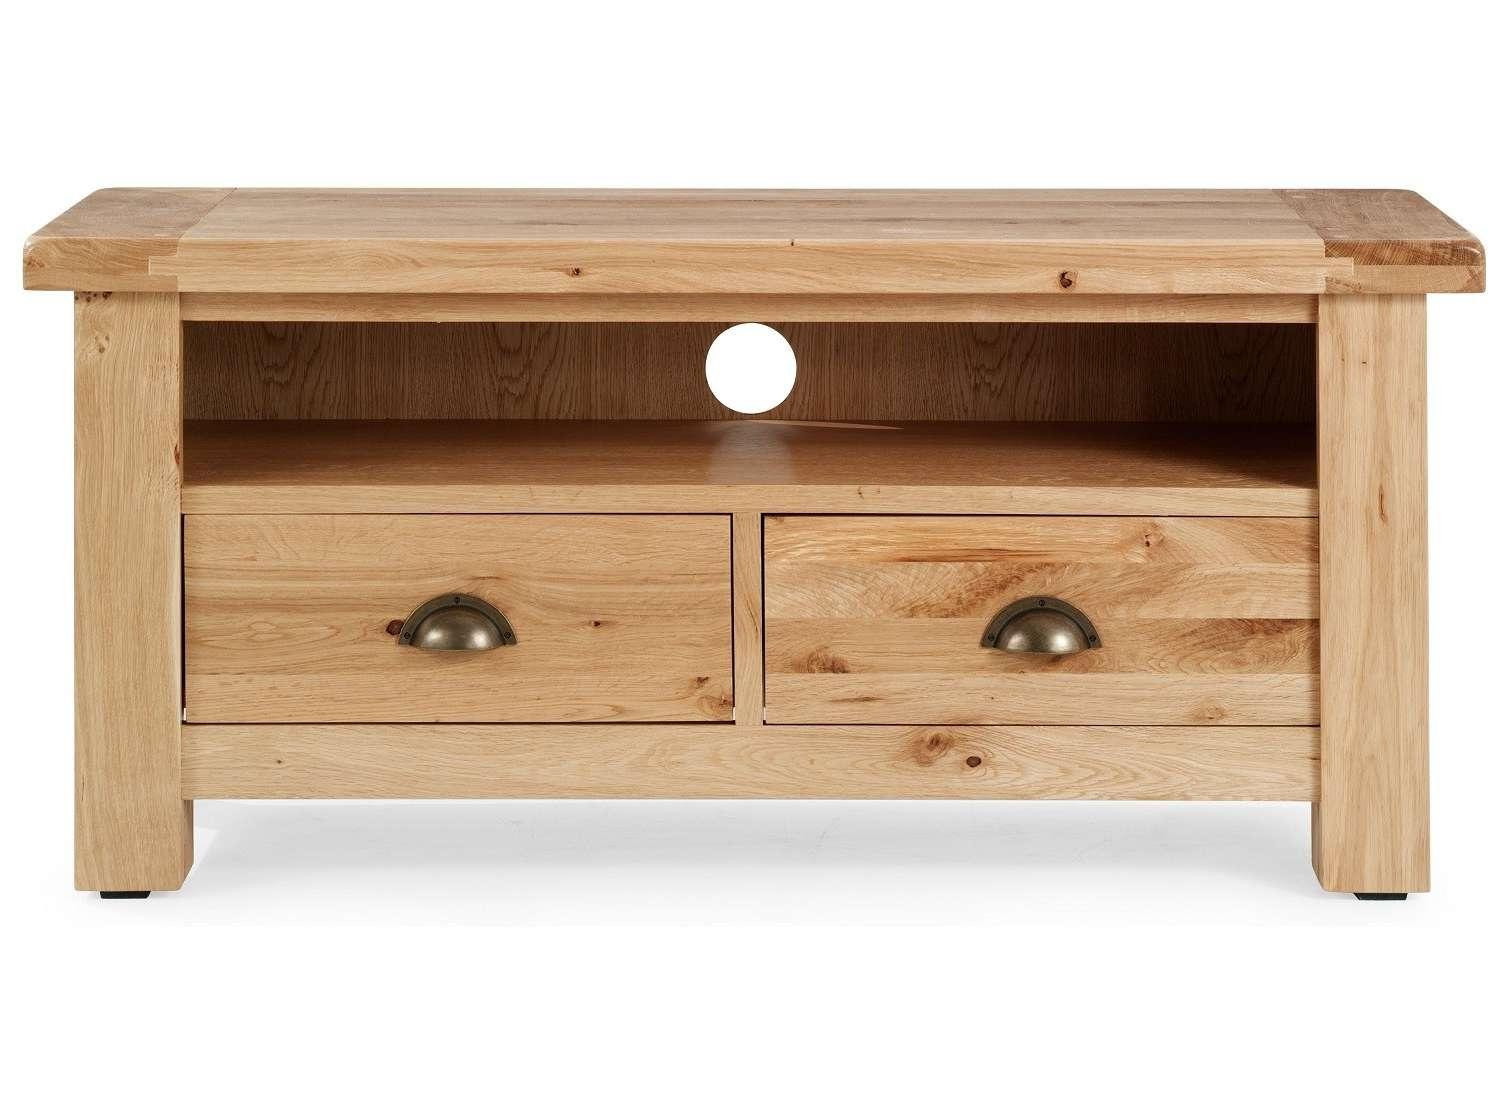 Normandy Rustic French Oak Tv Cabinet | Oak Furniture Uk Within Light Oak Corner Tv Cabinets (View 9 of 20)